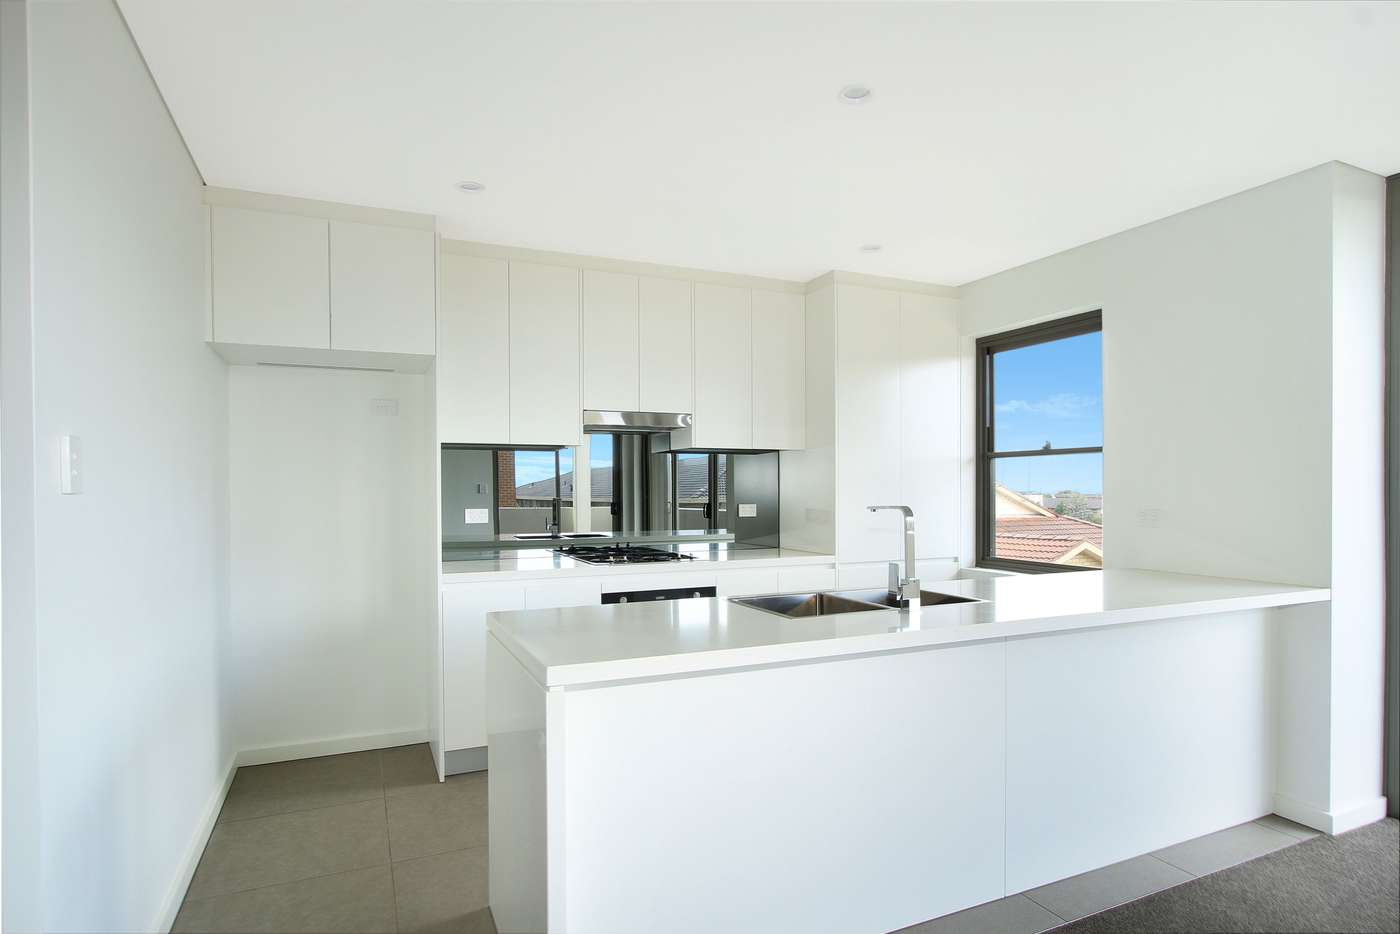 Main view of Homely apartment listing, 11/88 Smith Street, Wollongong NSW 2500